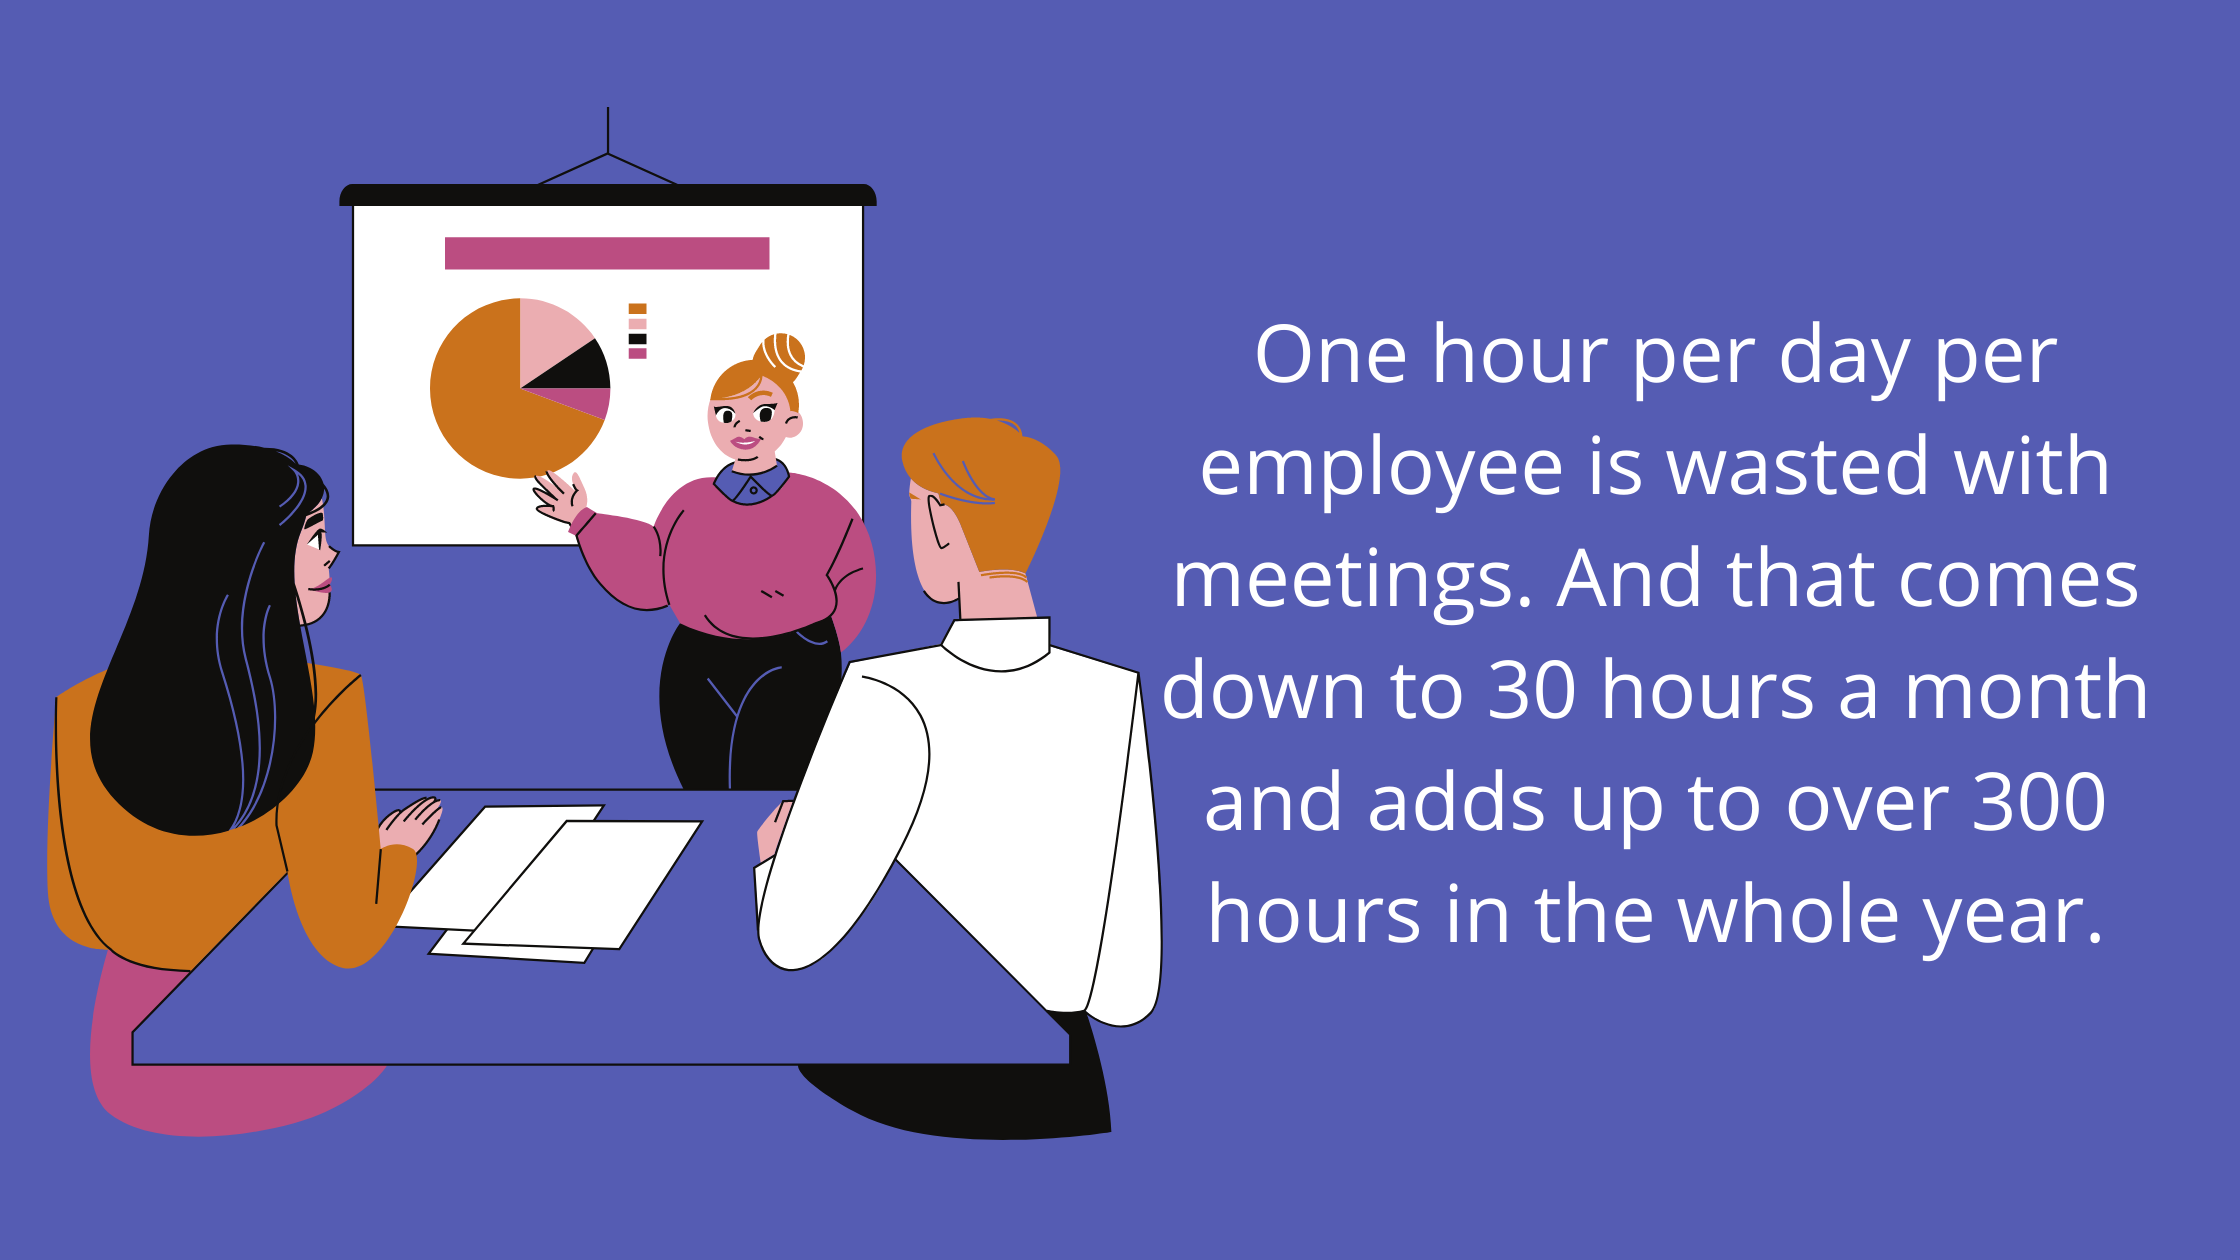 workplace meeting productivity stats and facts